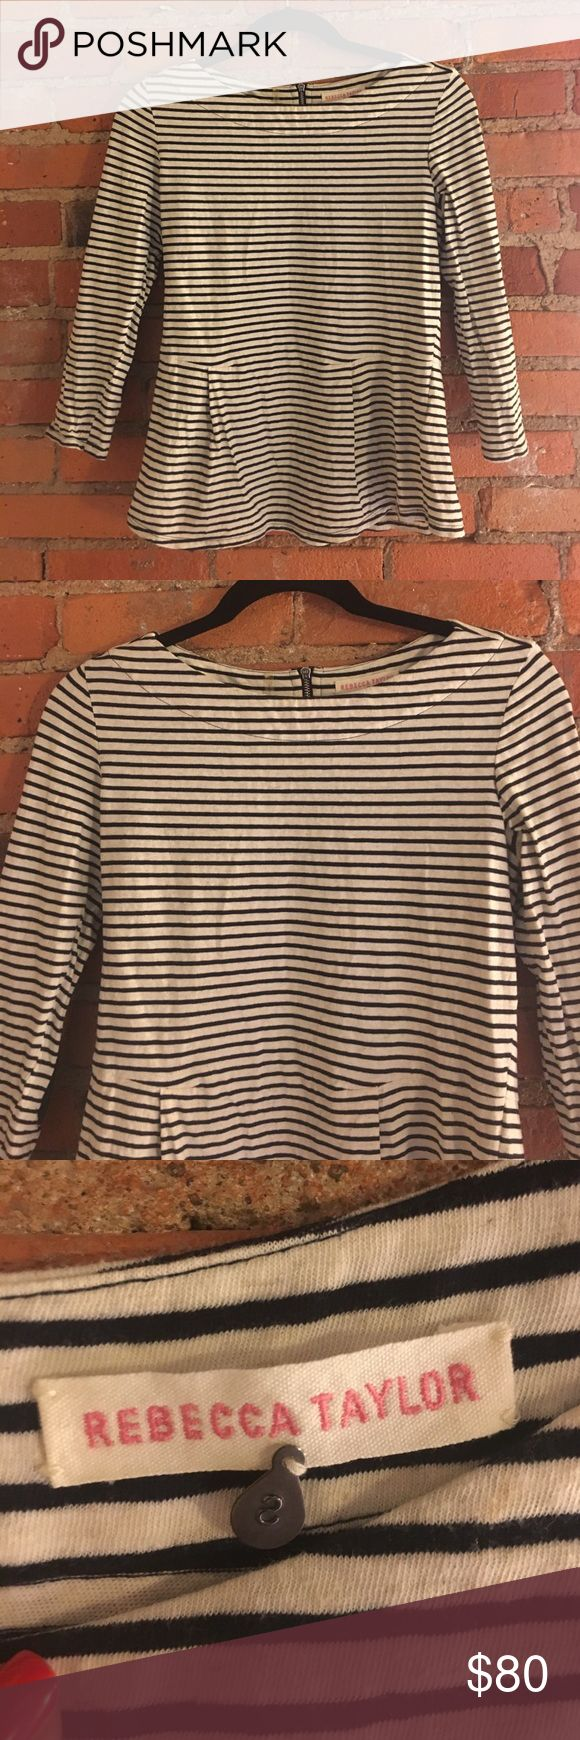 Rebecca Taylor blue striped peplum shirt small Excellent condition. Navy and cream striped with navy elbow patches. Size small. Rebecca Taylor Tops